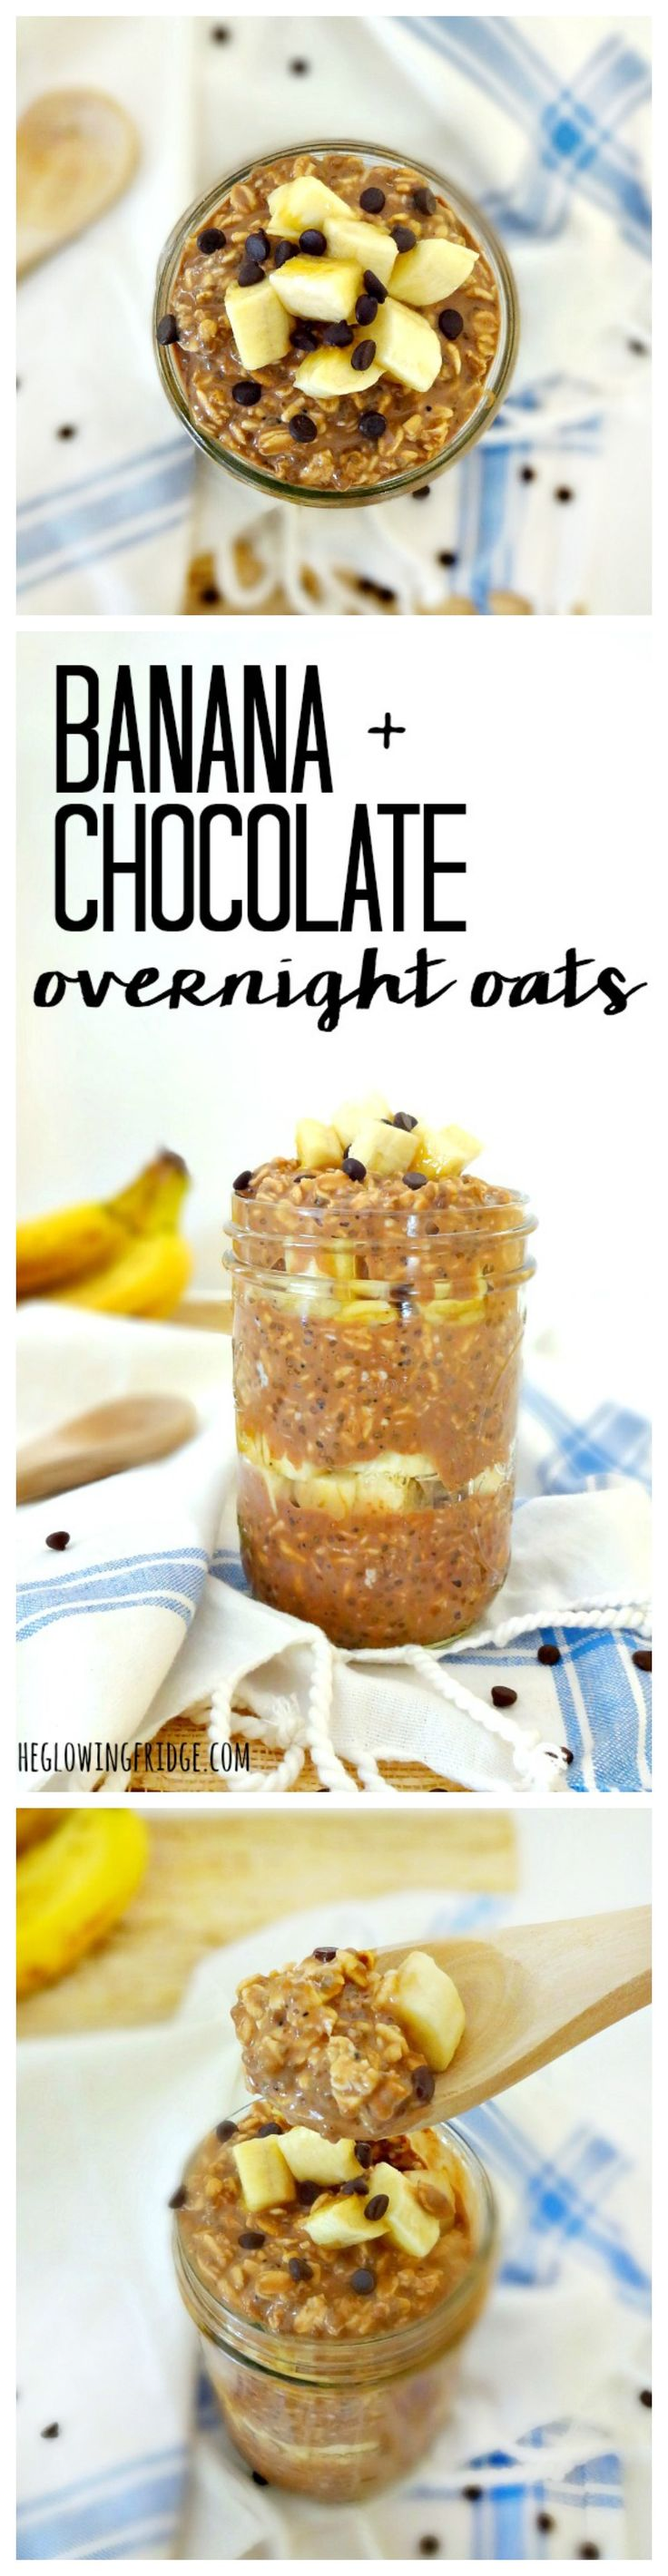 Banana Chocolate Overnight Oats - vegan, gluten free, low fat and super healthy, with a chocolate twist! This yummy breakfast tastes like a treat but is energizing, filling and packed with healthy ingredients.